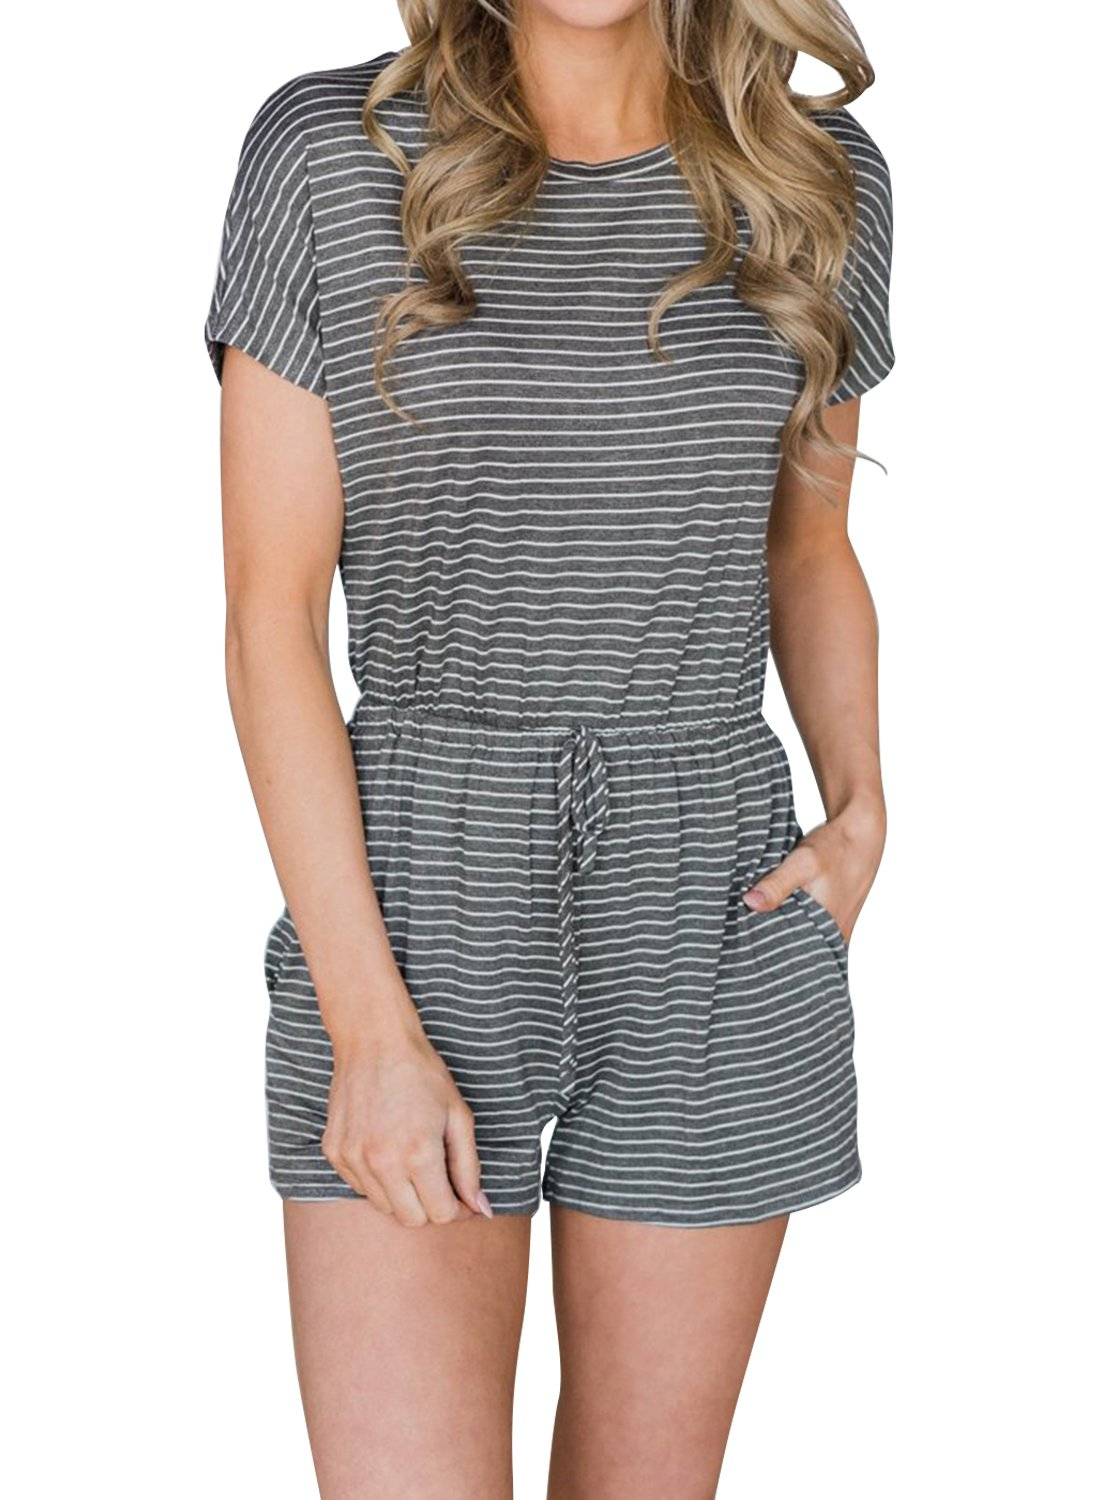 MIHOLL Women Short Sleeve Striped Jumpsuit Casual Summer Rompers Playsuits (Small, Grey)